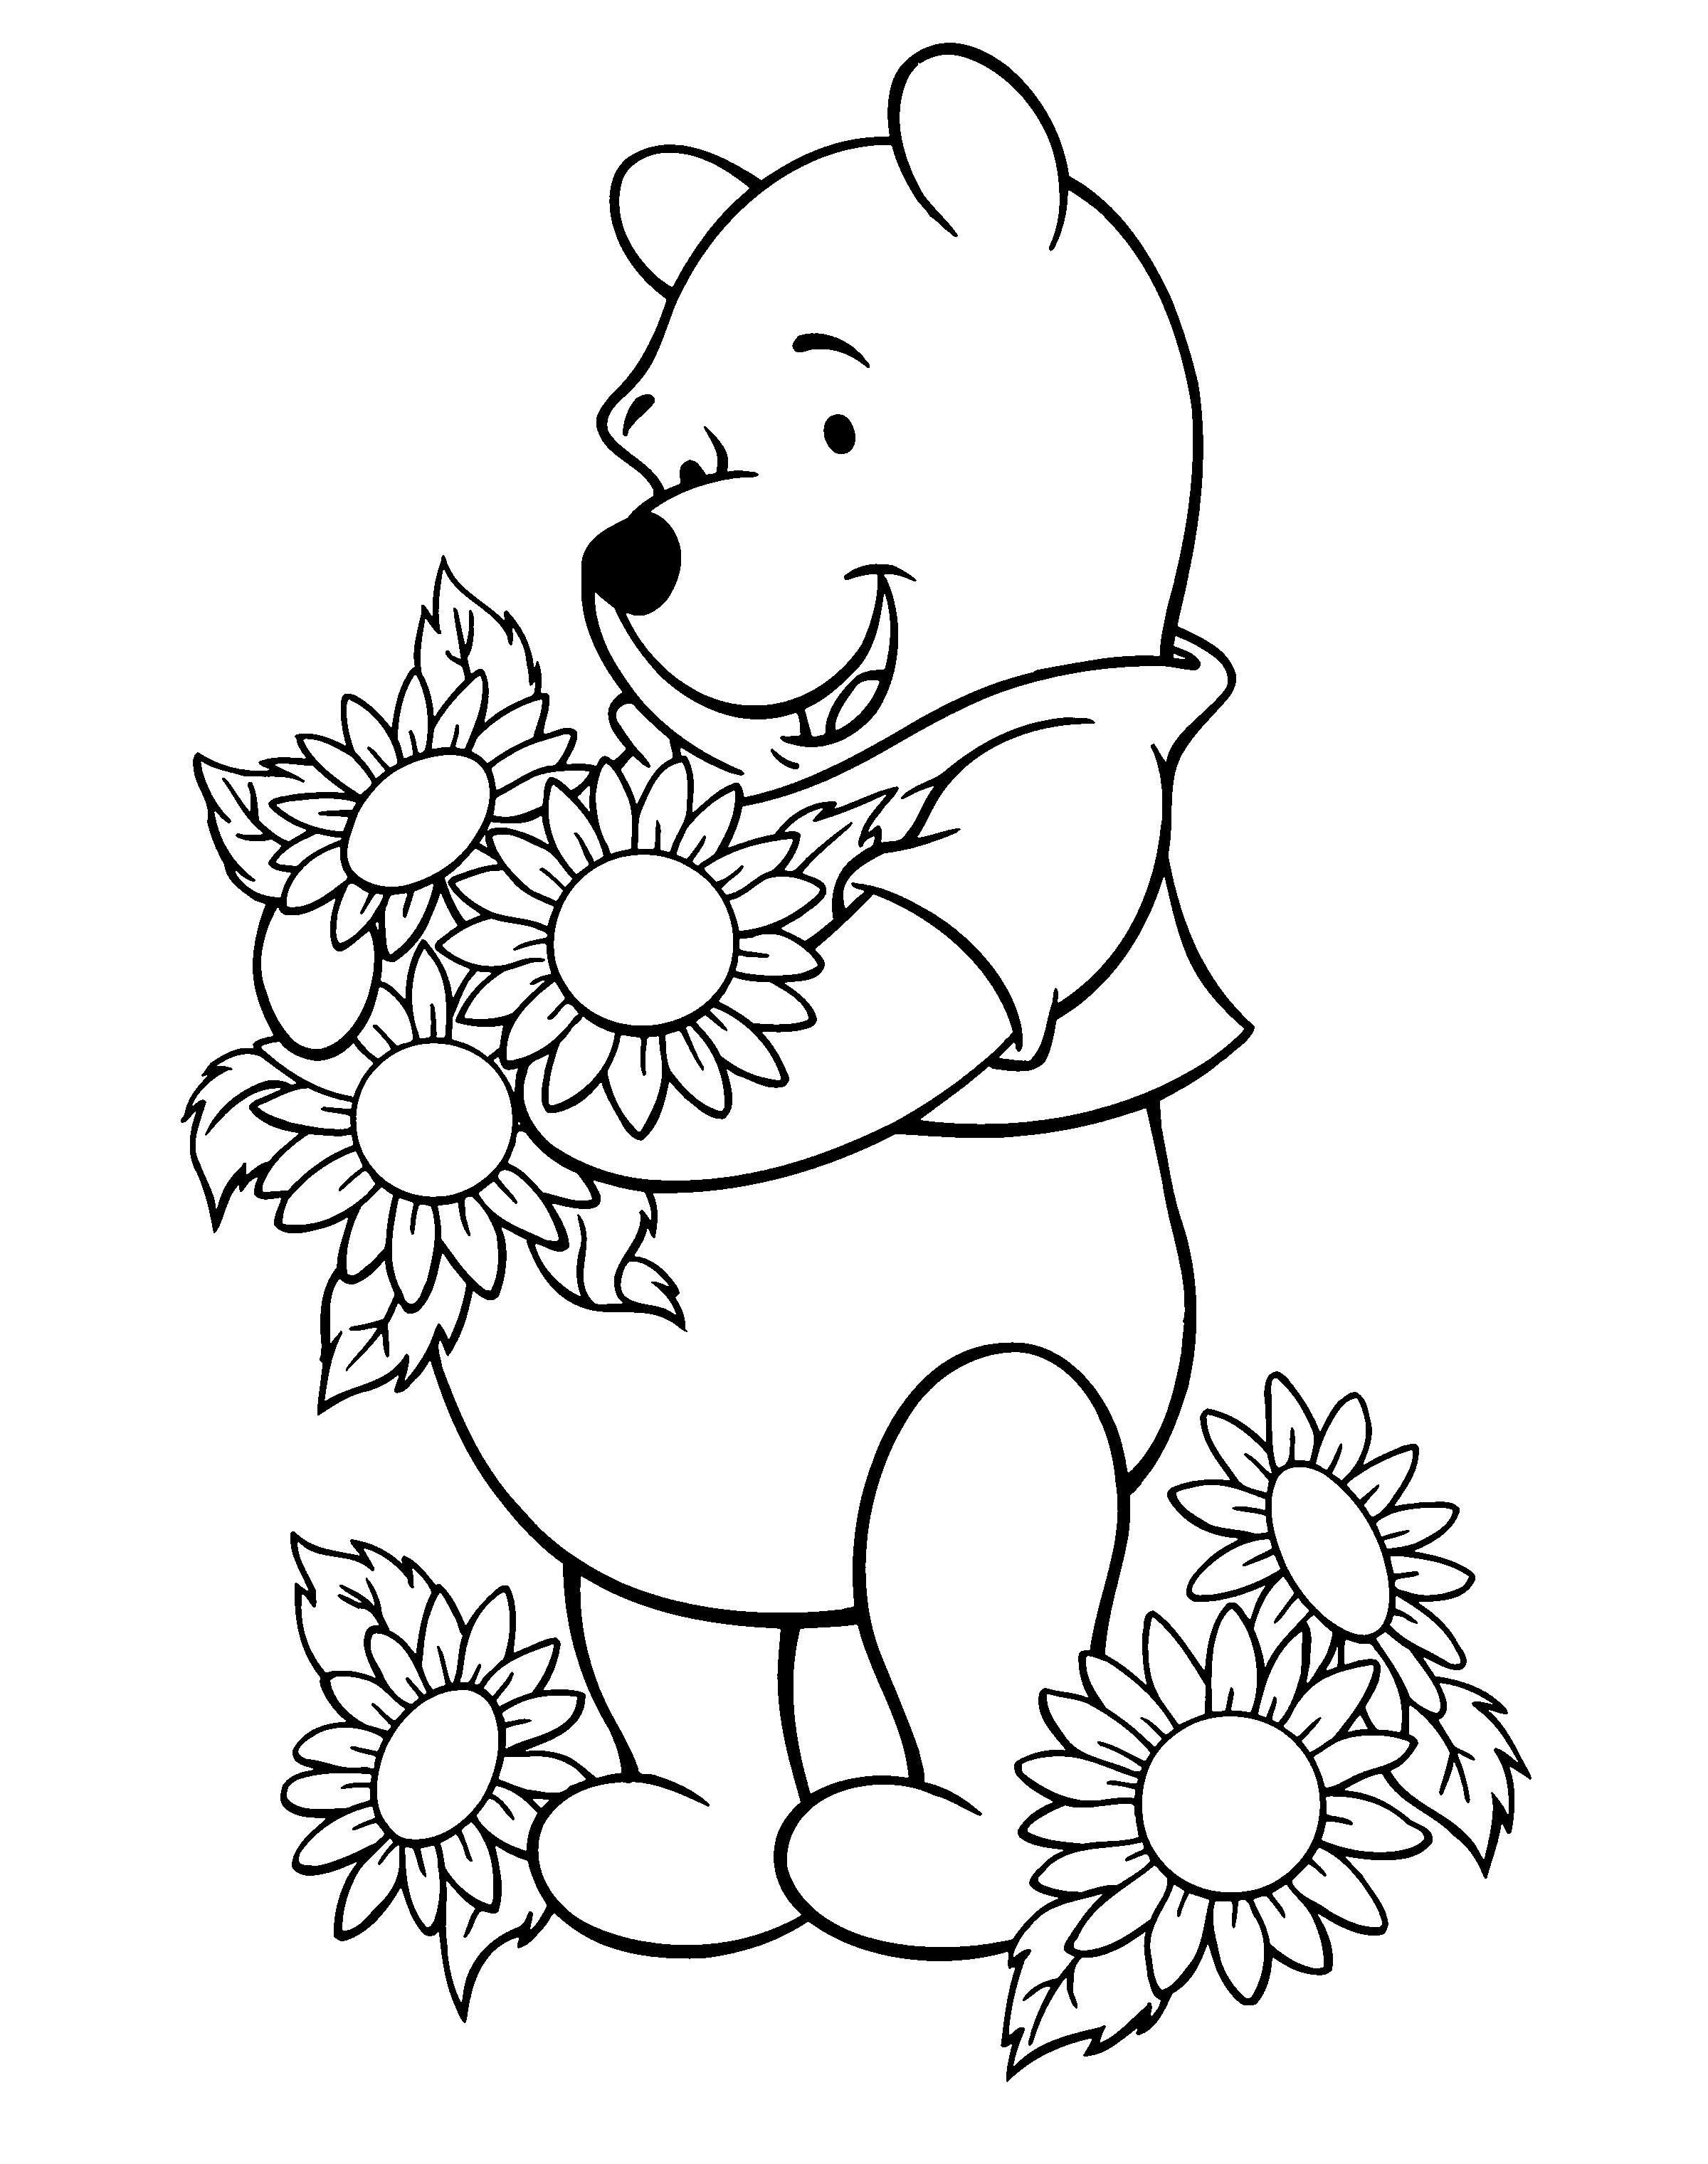 Sunflowers Clipart To Color 20 Free Cliparts